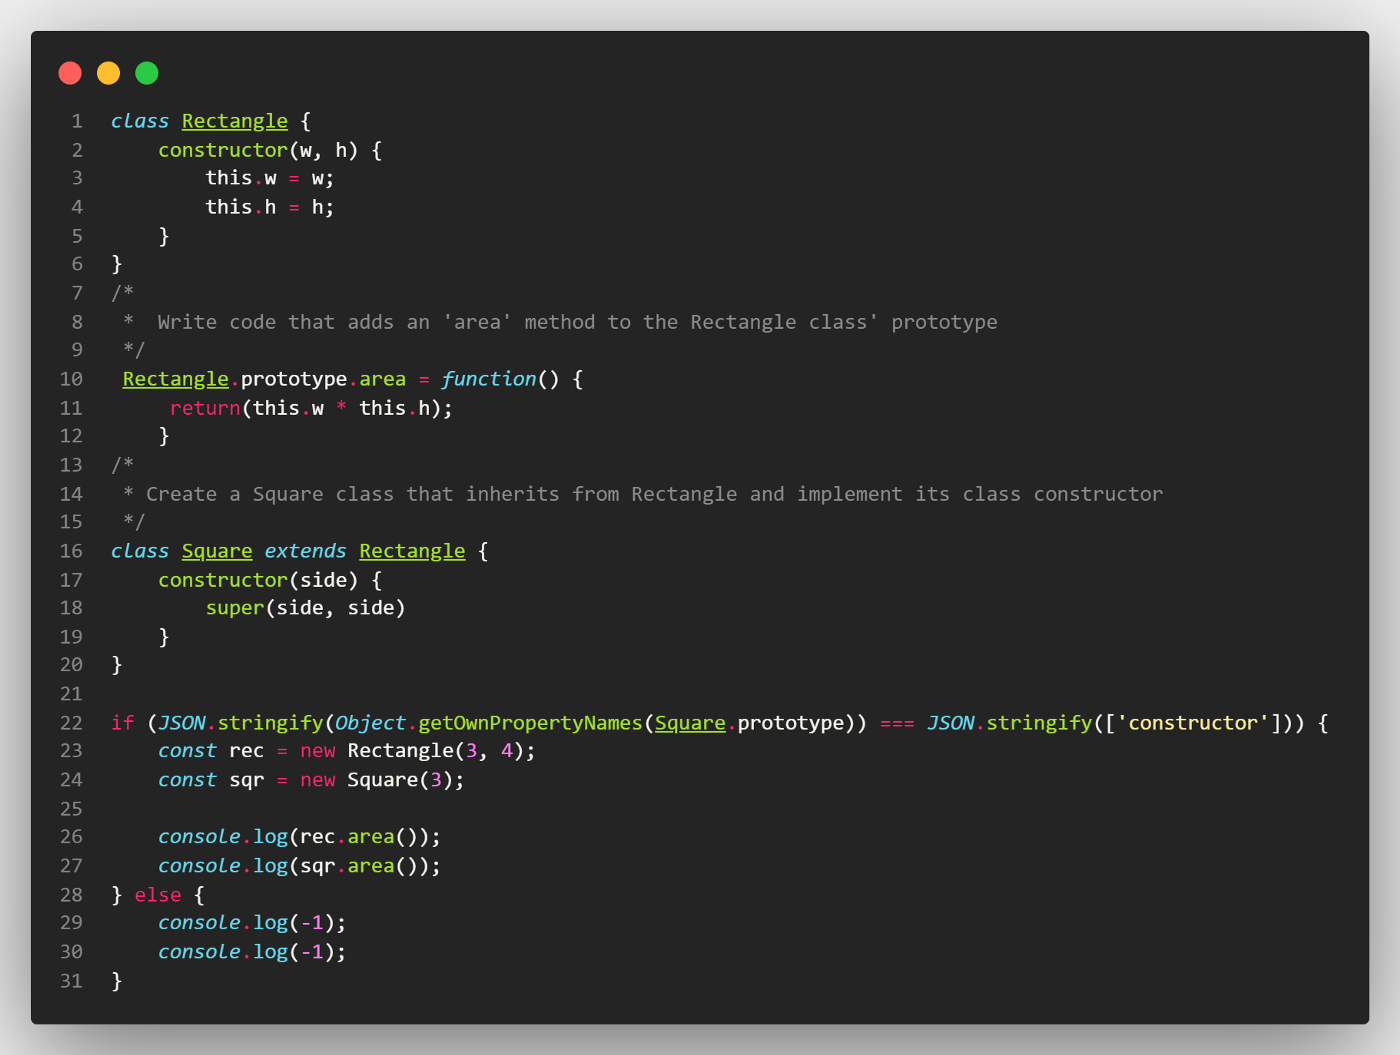 Image of the solution code